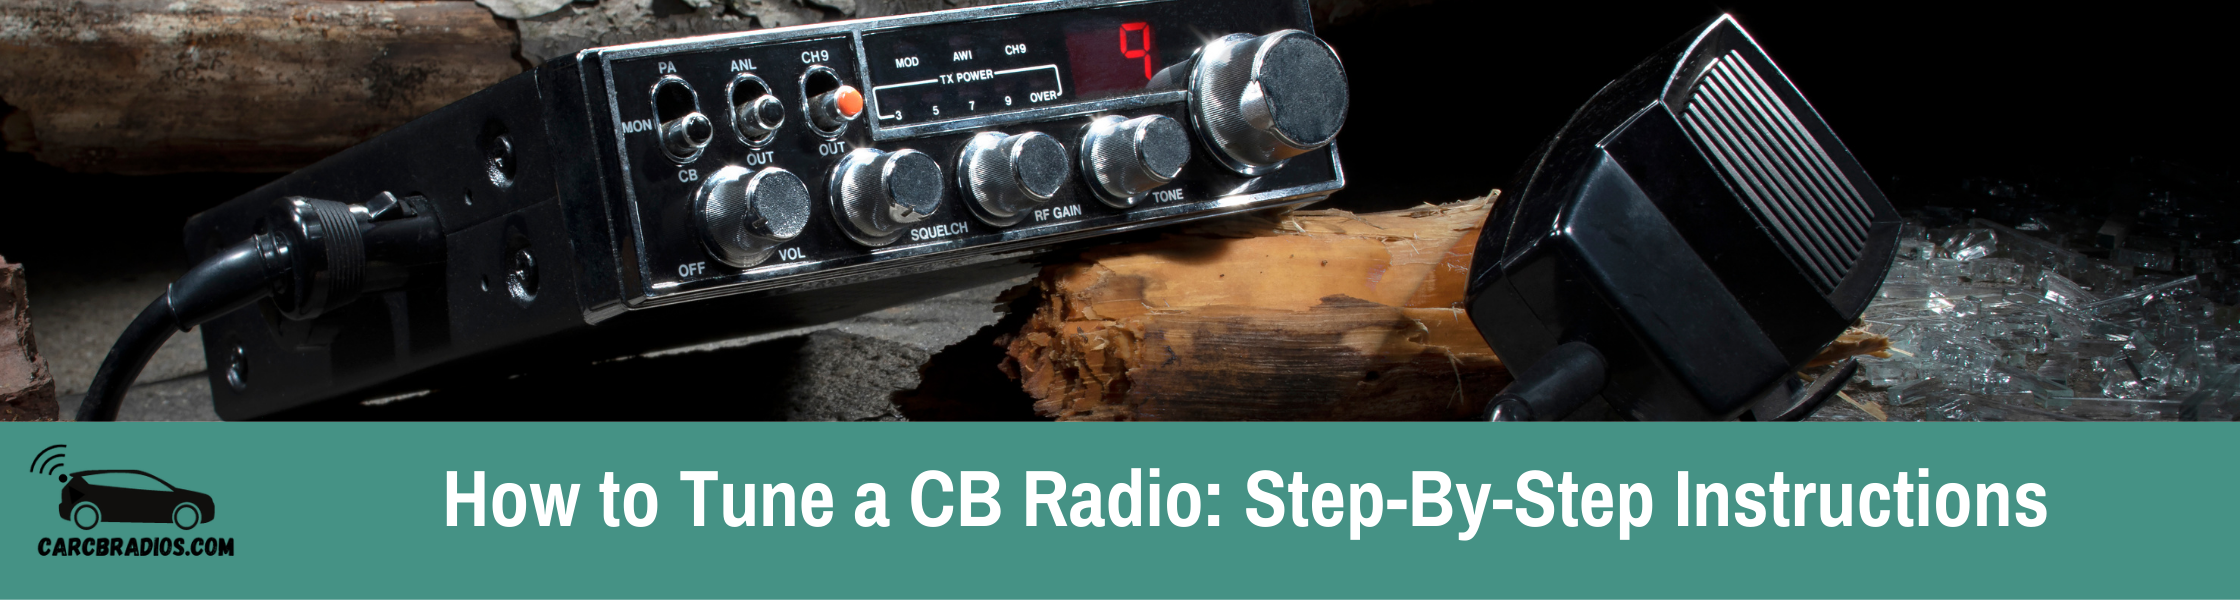 How to Tune a CB Radio - Step-By-Step Instructions: Trying to tune your CB radio? Learn what SWR is, how it can help you tune your CB radio, and why it's important.